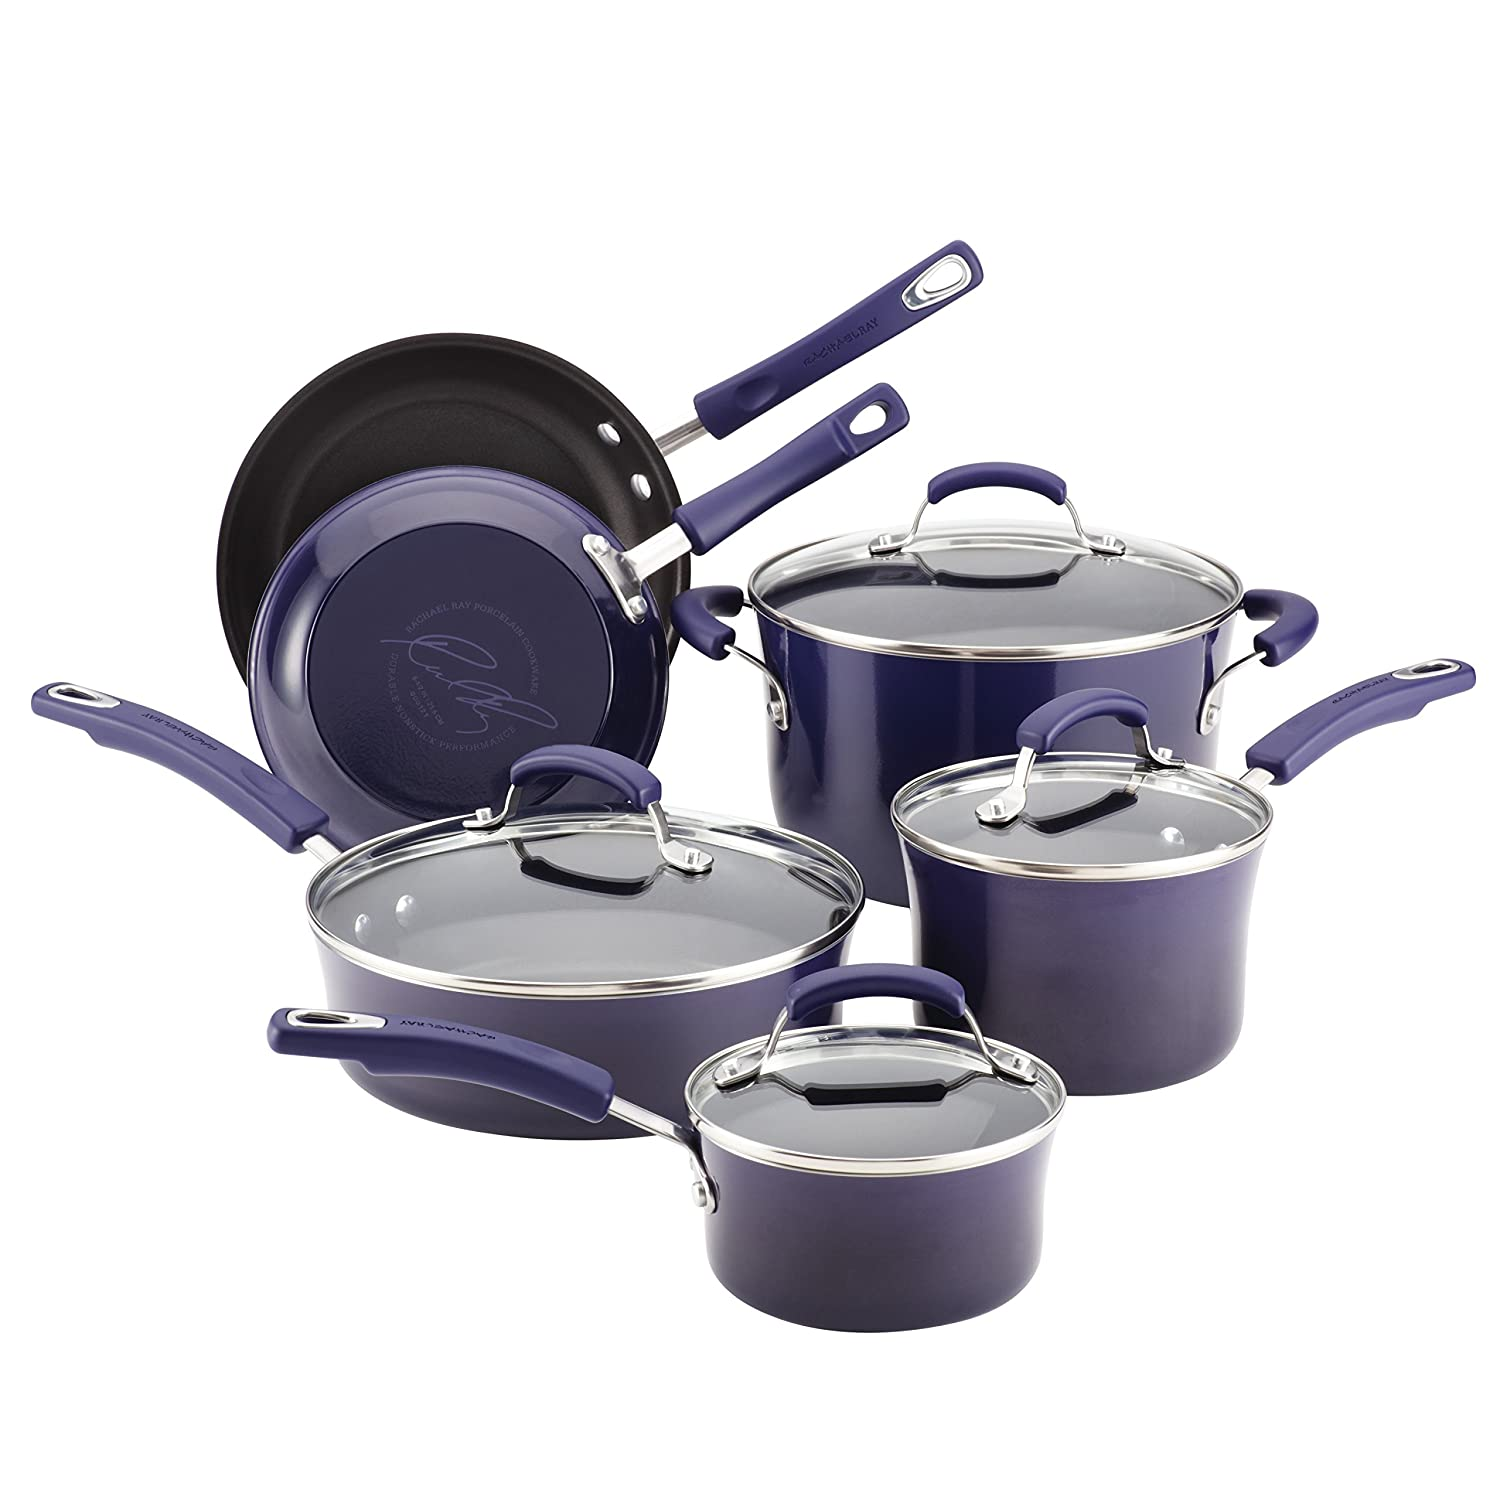 Rachael Ray Porcelain Enamel II Nonstick 10-Piece Cookware Set, Fennel Gradient 12816